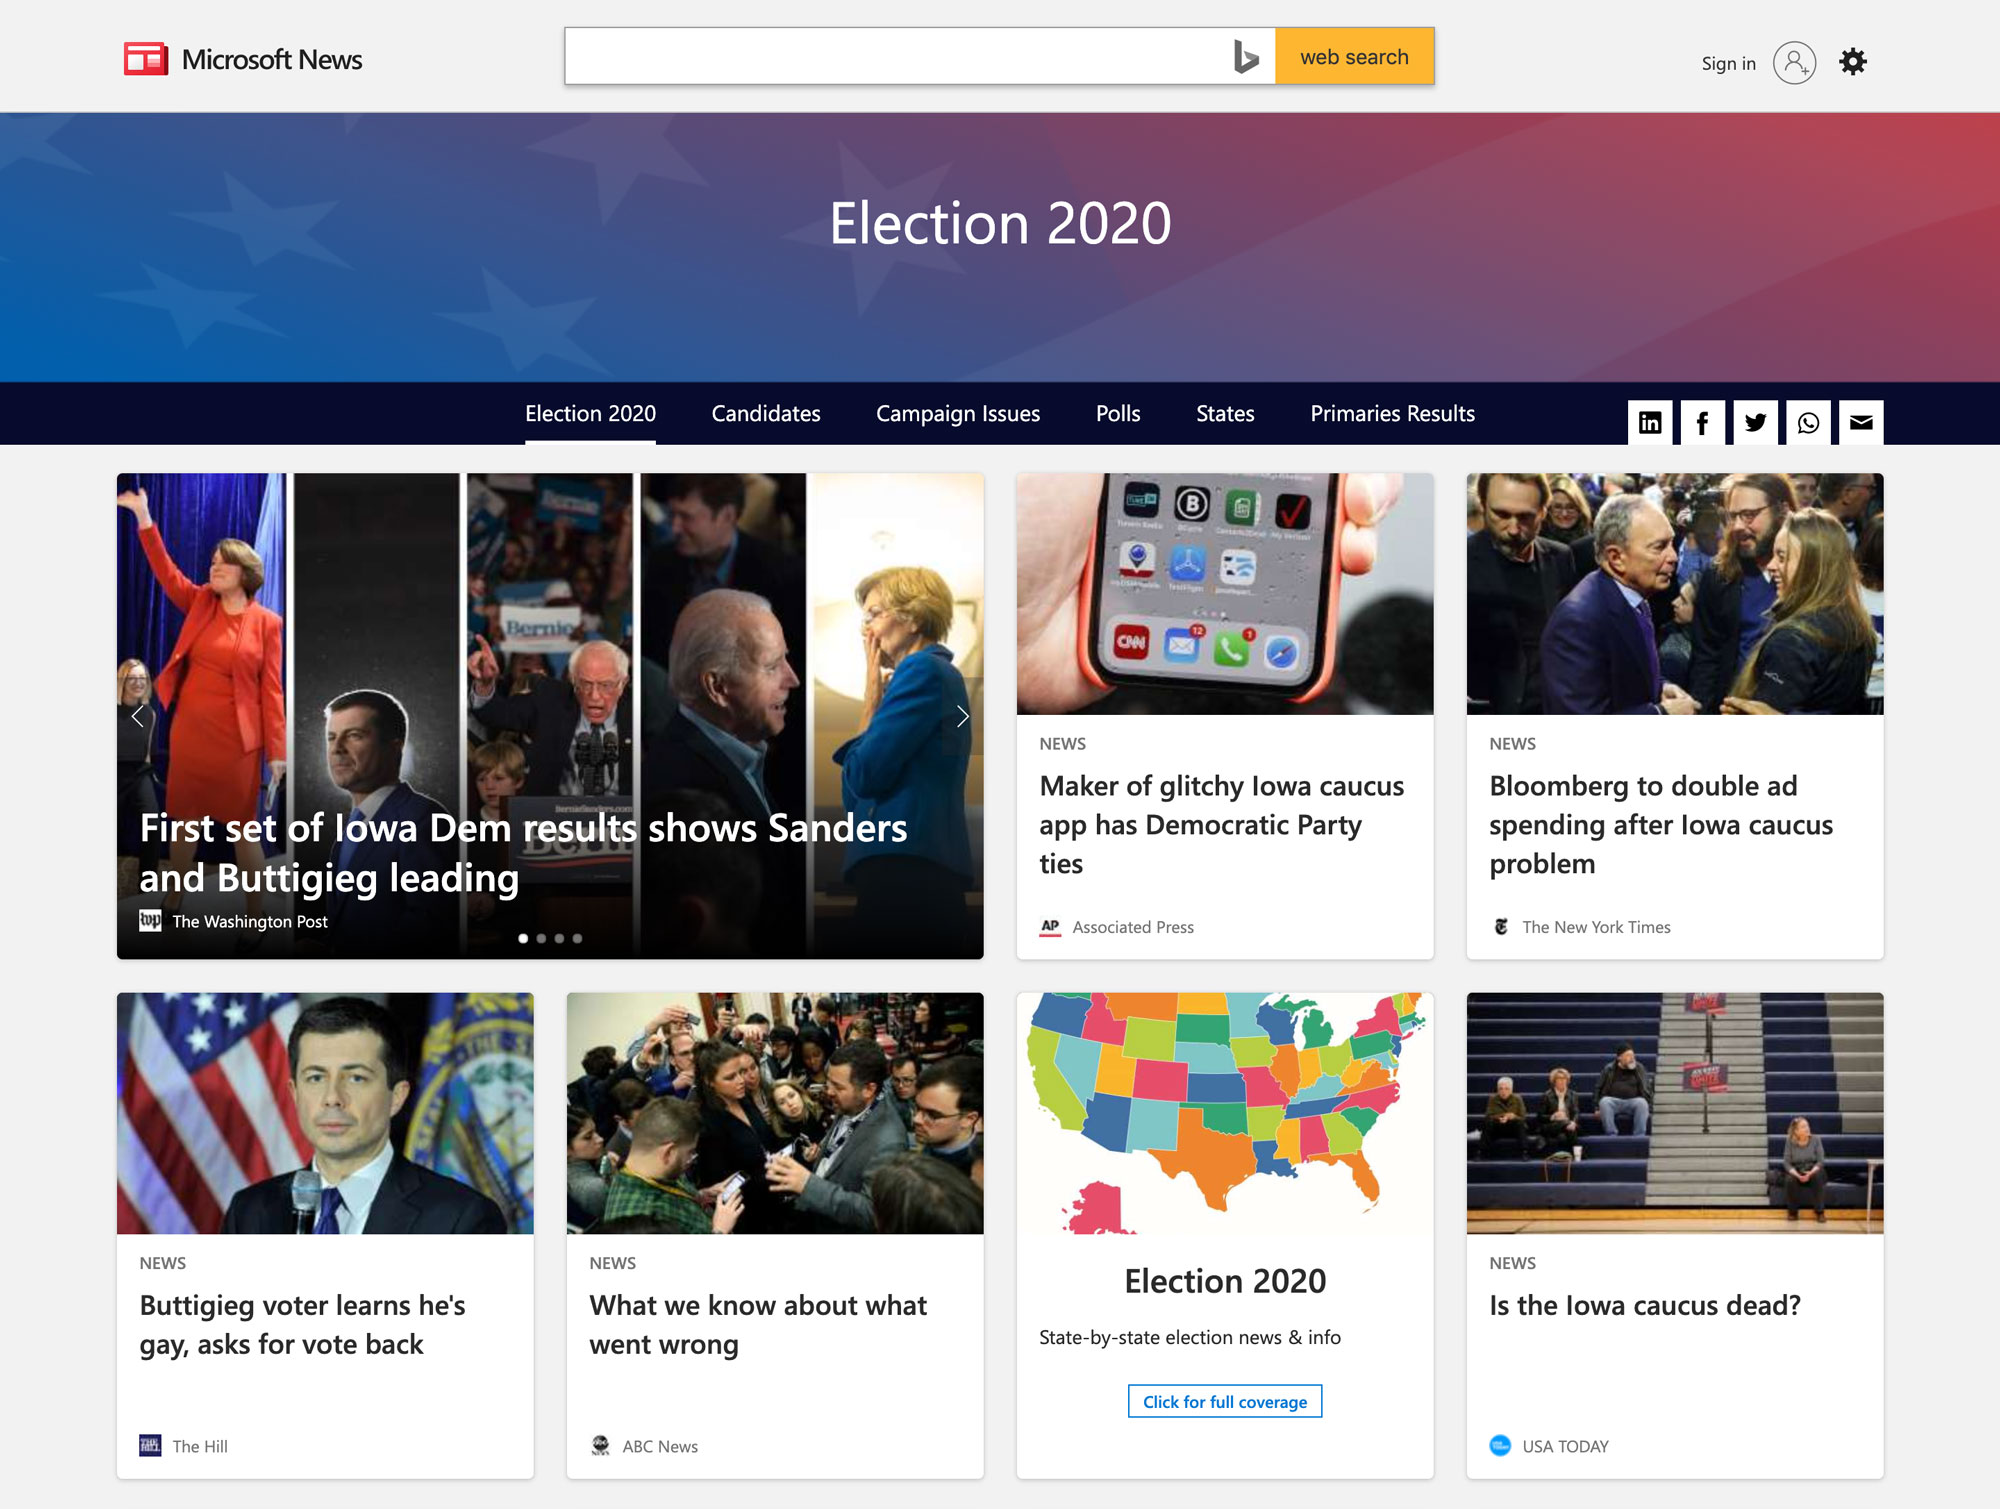 Election 2020 on Microsoft News